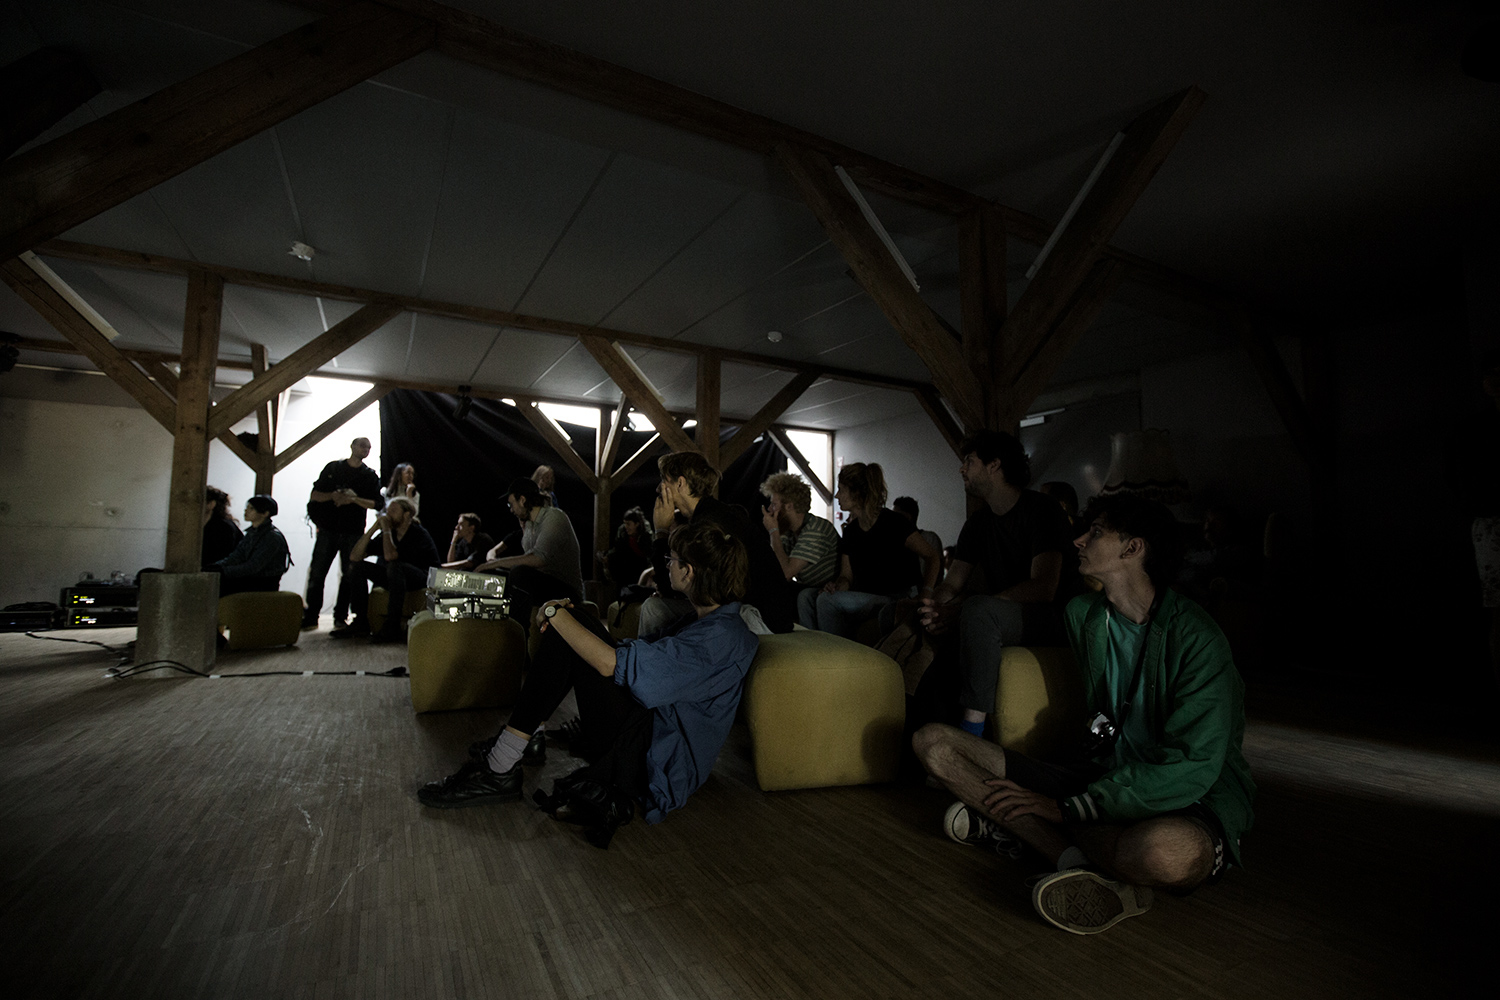 All Sounds Considered by Laurent Orseau - Meakusma Festival - Alter Schlachthof - Eupen, Belgium #7